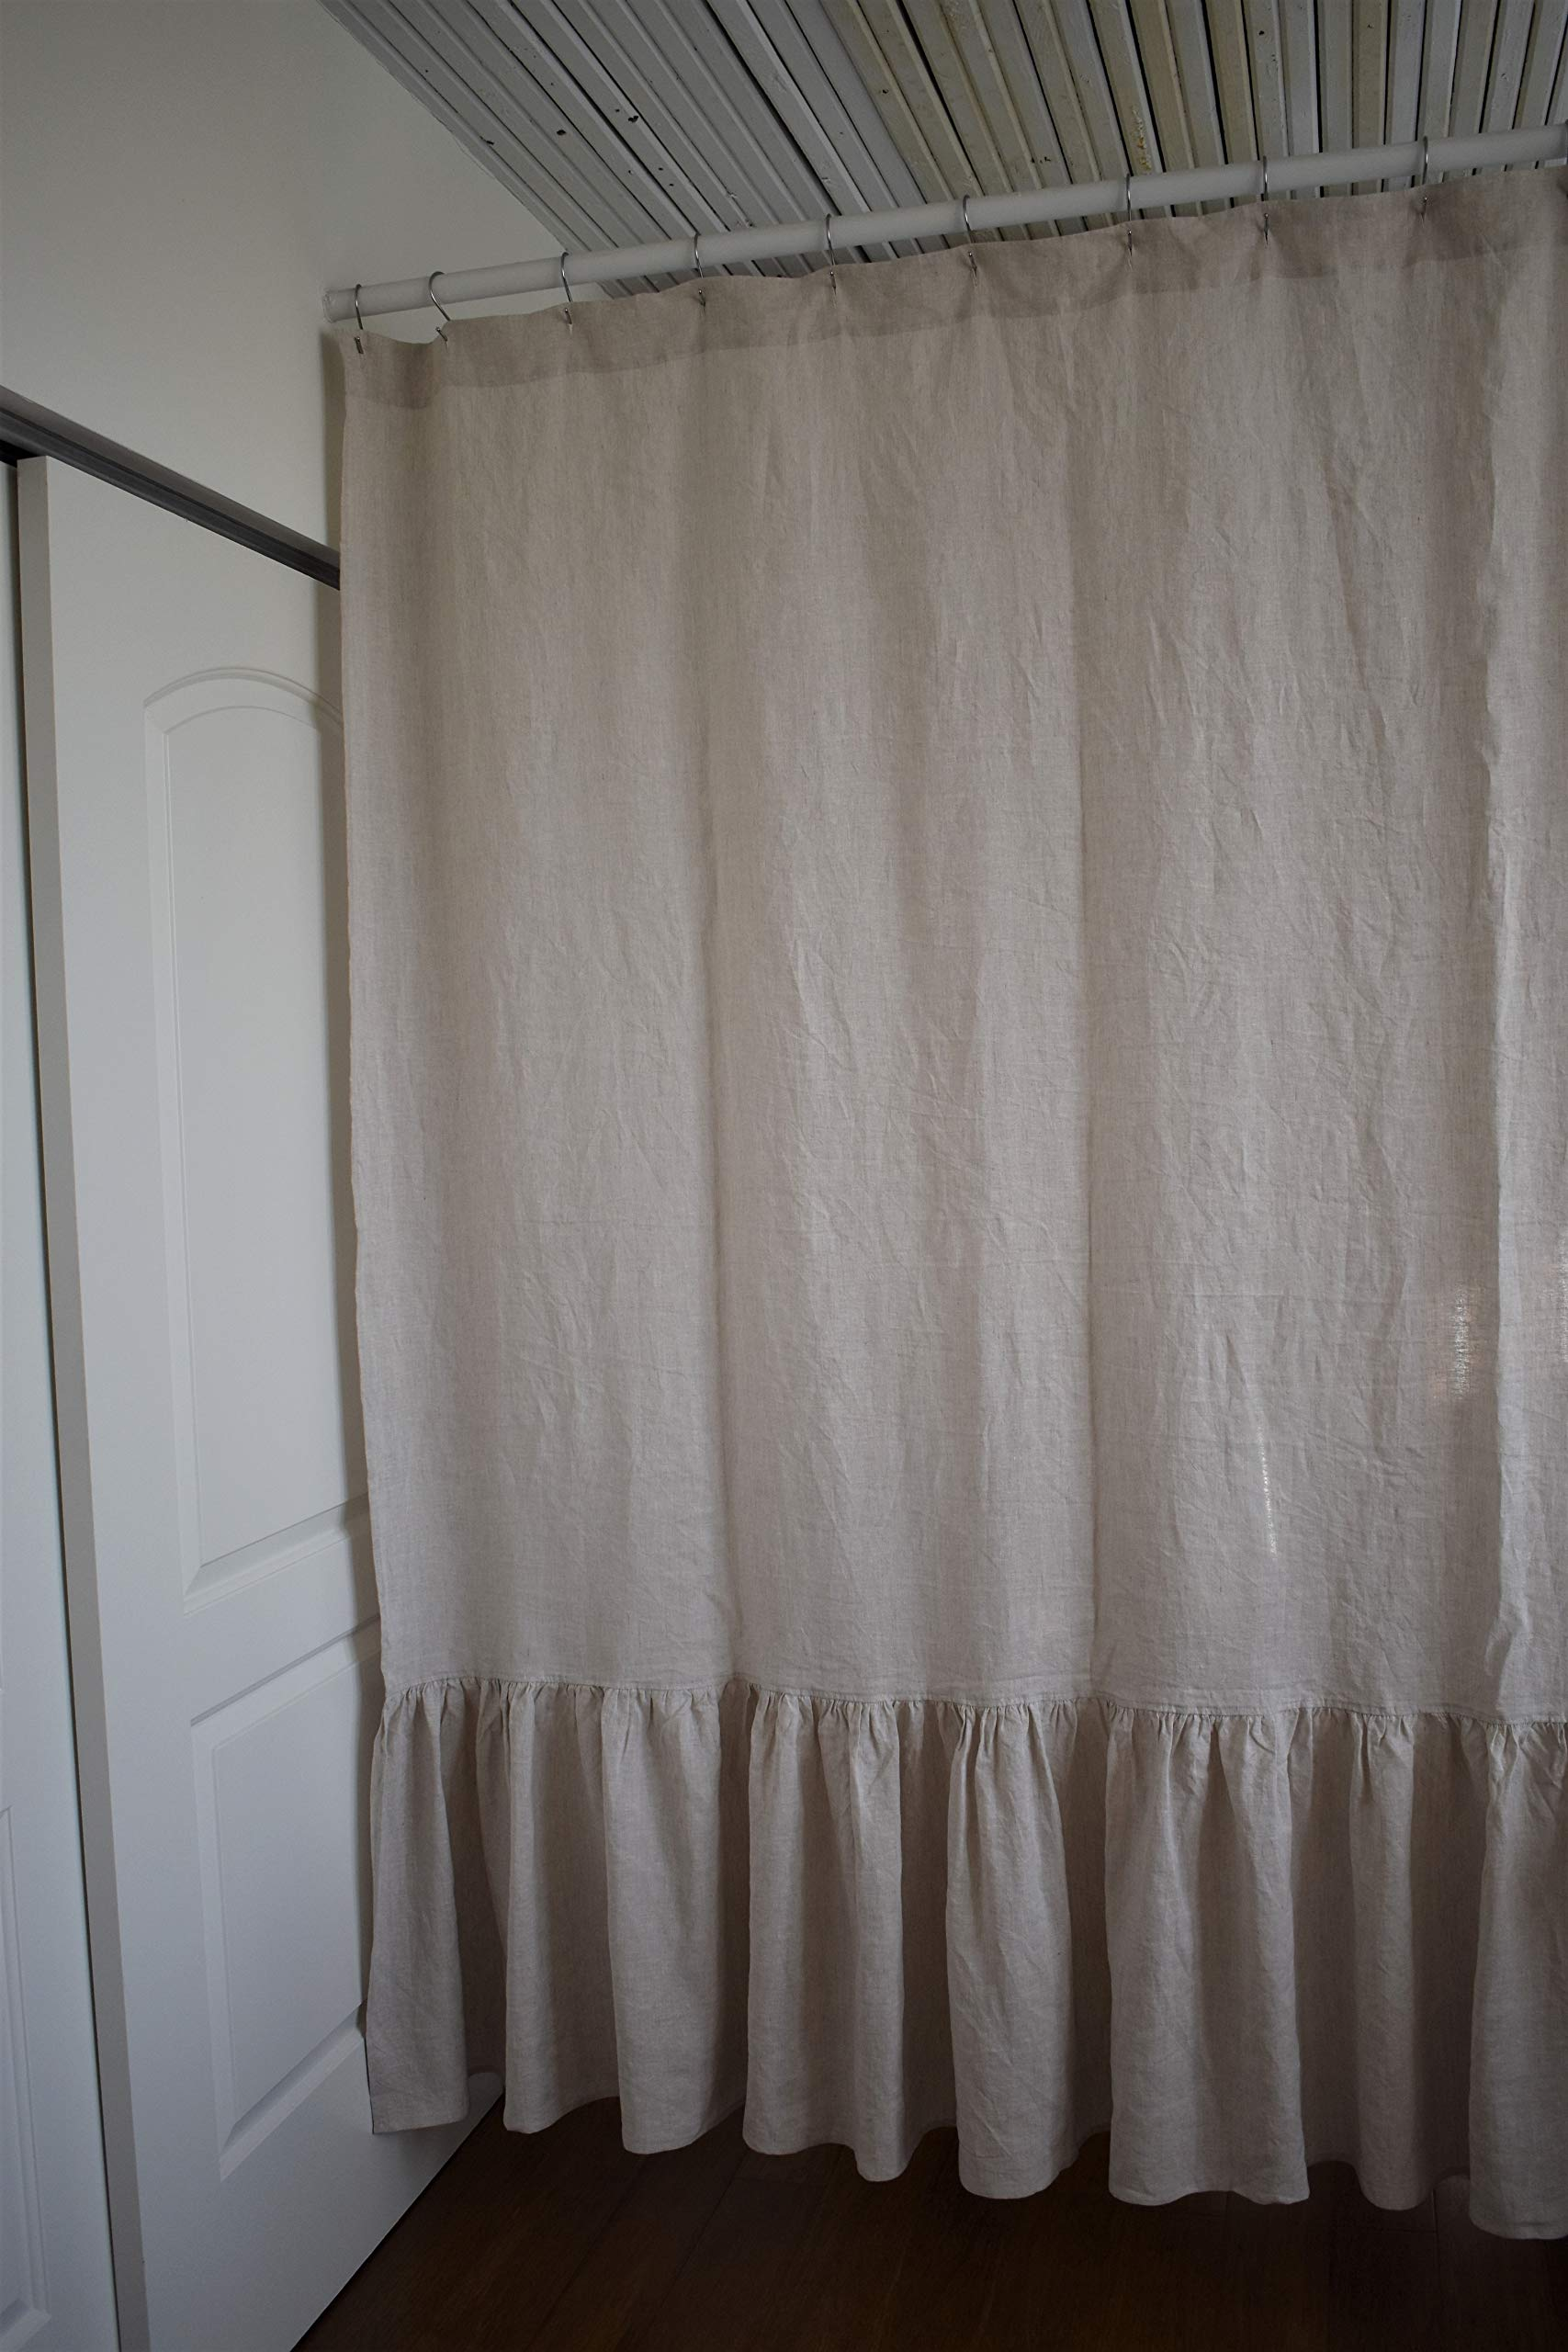 Low Profile Luxury Pure Flax Linen Shower Curtain with Pleated Bottom 72'' x 84'', in Natural Linen Color (72''(W) x 84''(H))